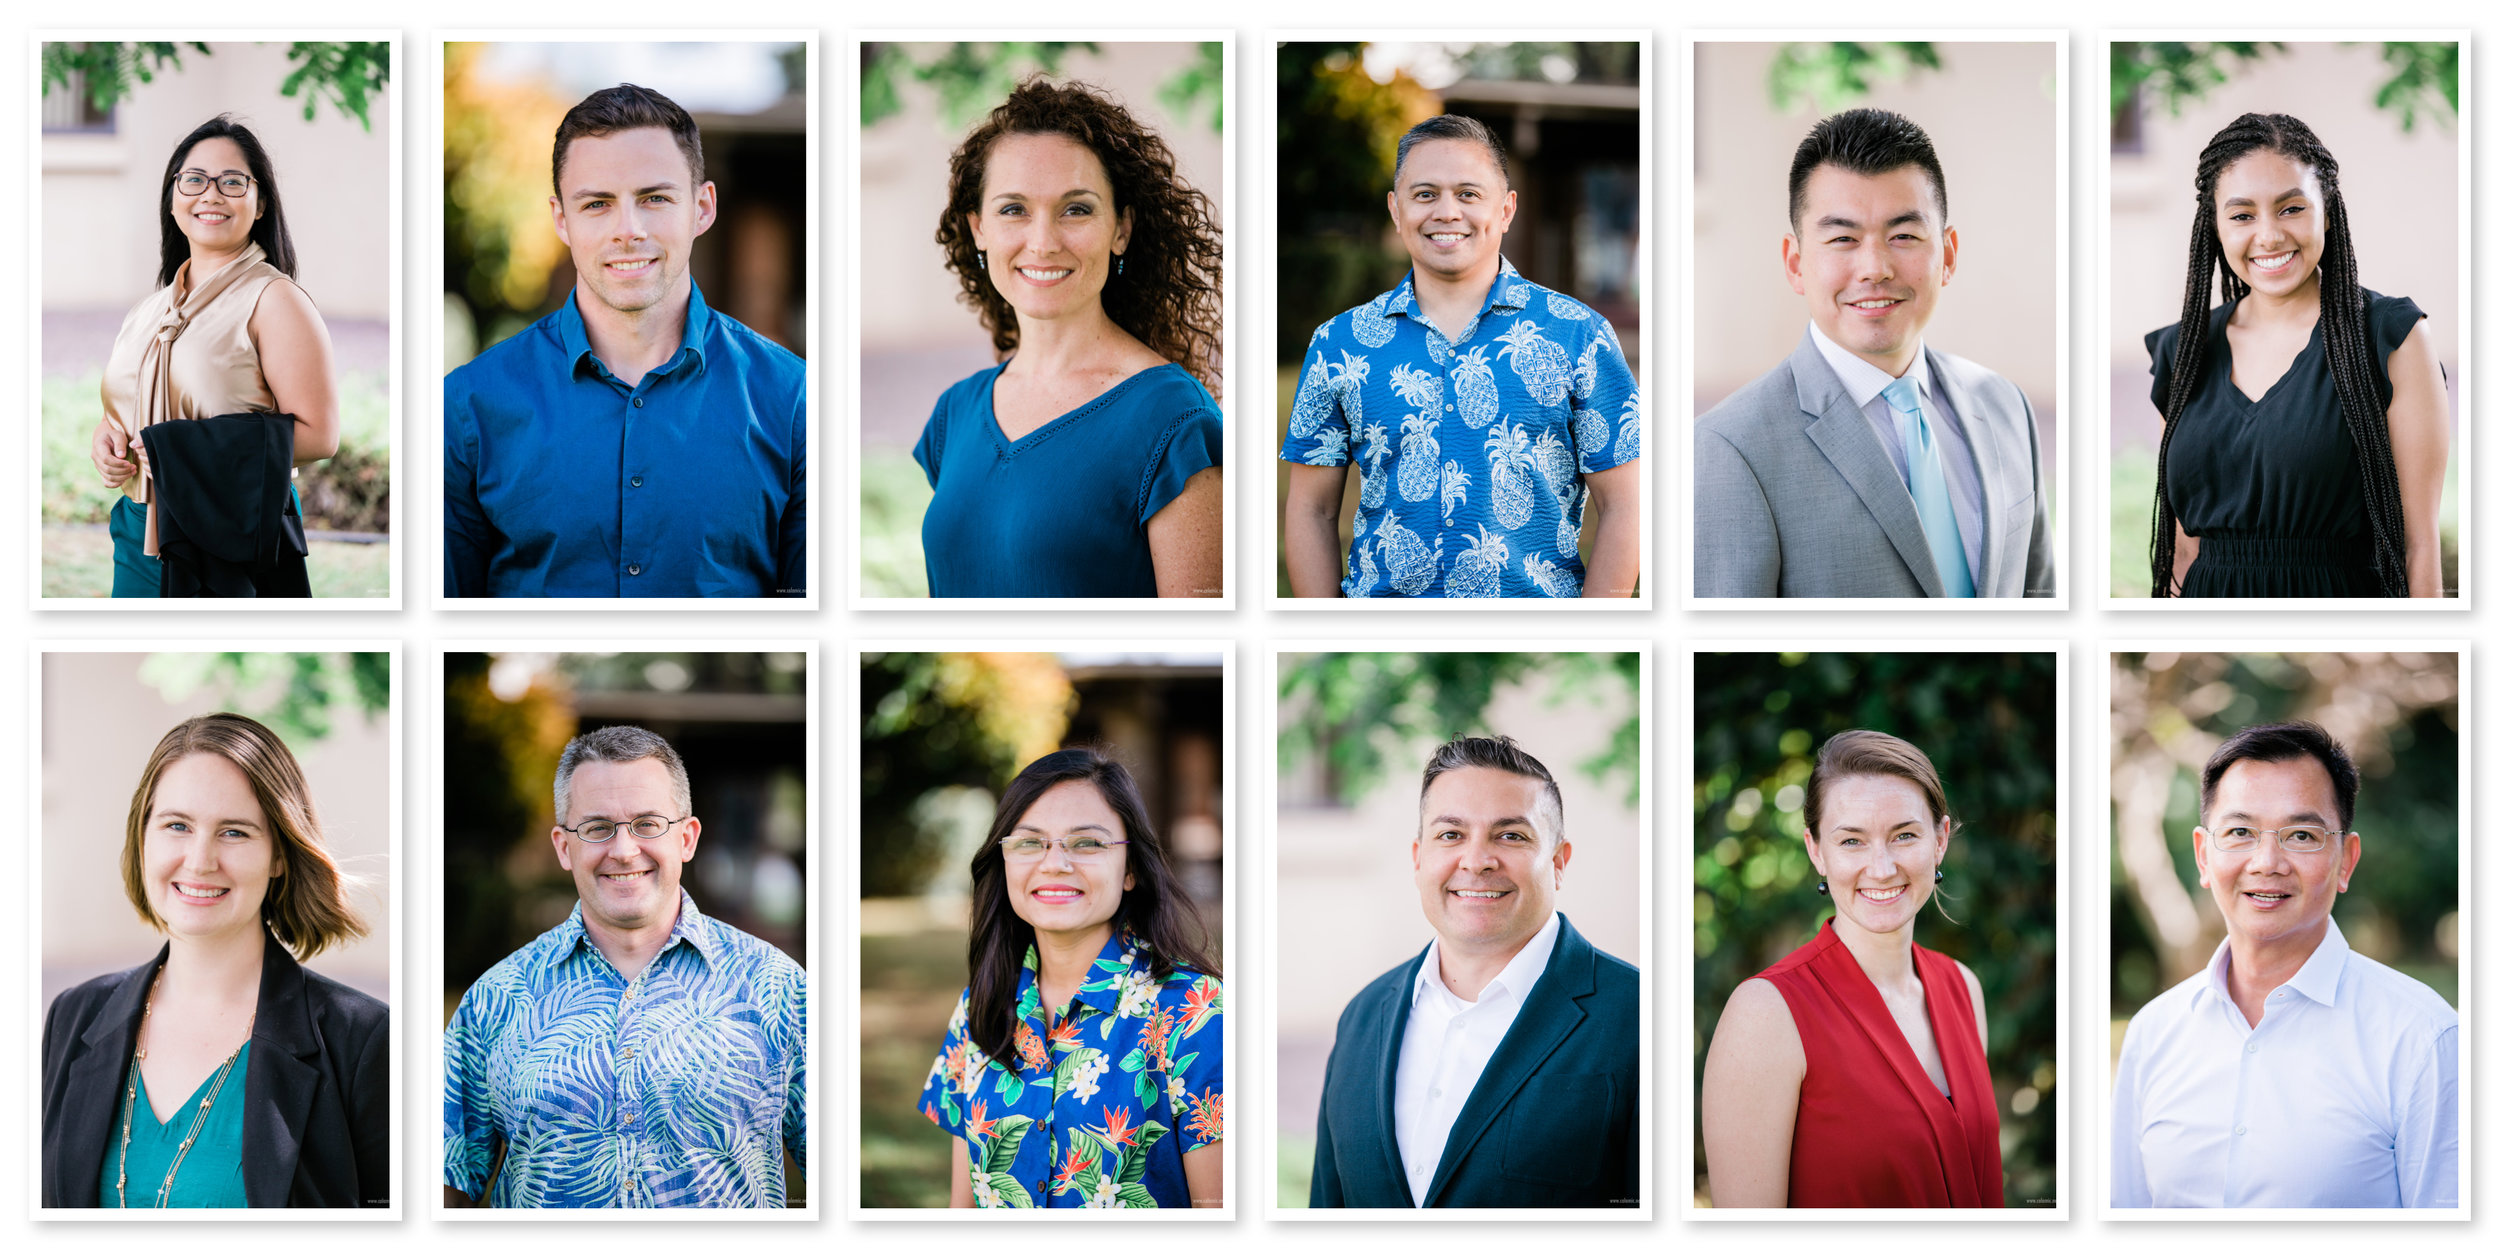 A collection of 5 minute headshots I took at an Onward to Opportunity event for transition service members and their families.